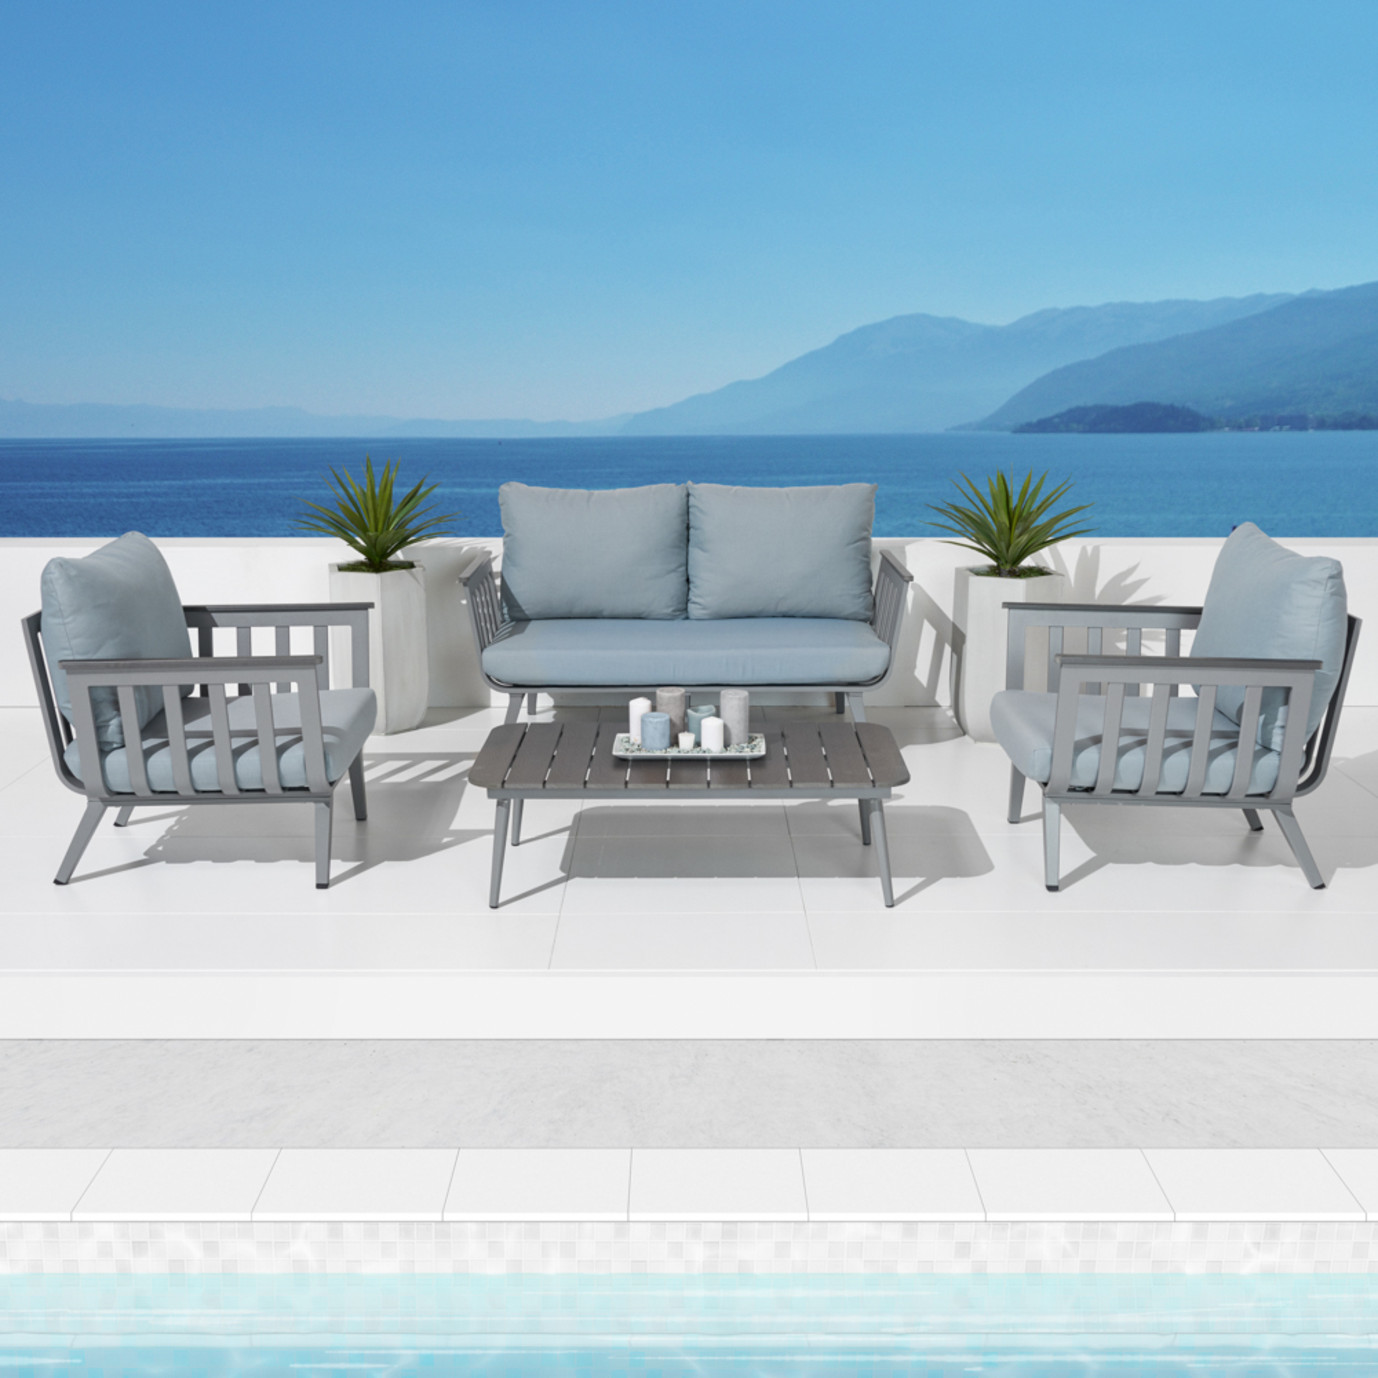 Vera Outdoor Furniture Collection  Sky Blue  Rst Brands. Patio Brick Interlocking. Patio Home Morgantown Wv. Patio Builders Cardiff. Concrete Patio Edmonton. Patio Furniture Yellow Cushions. Patio Store Dublin Ca. Patio Store Torrance. Patio Swing Or Glider